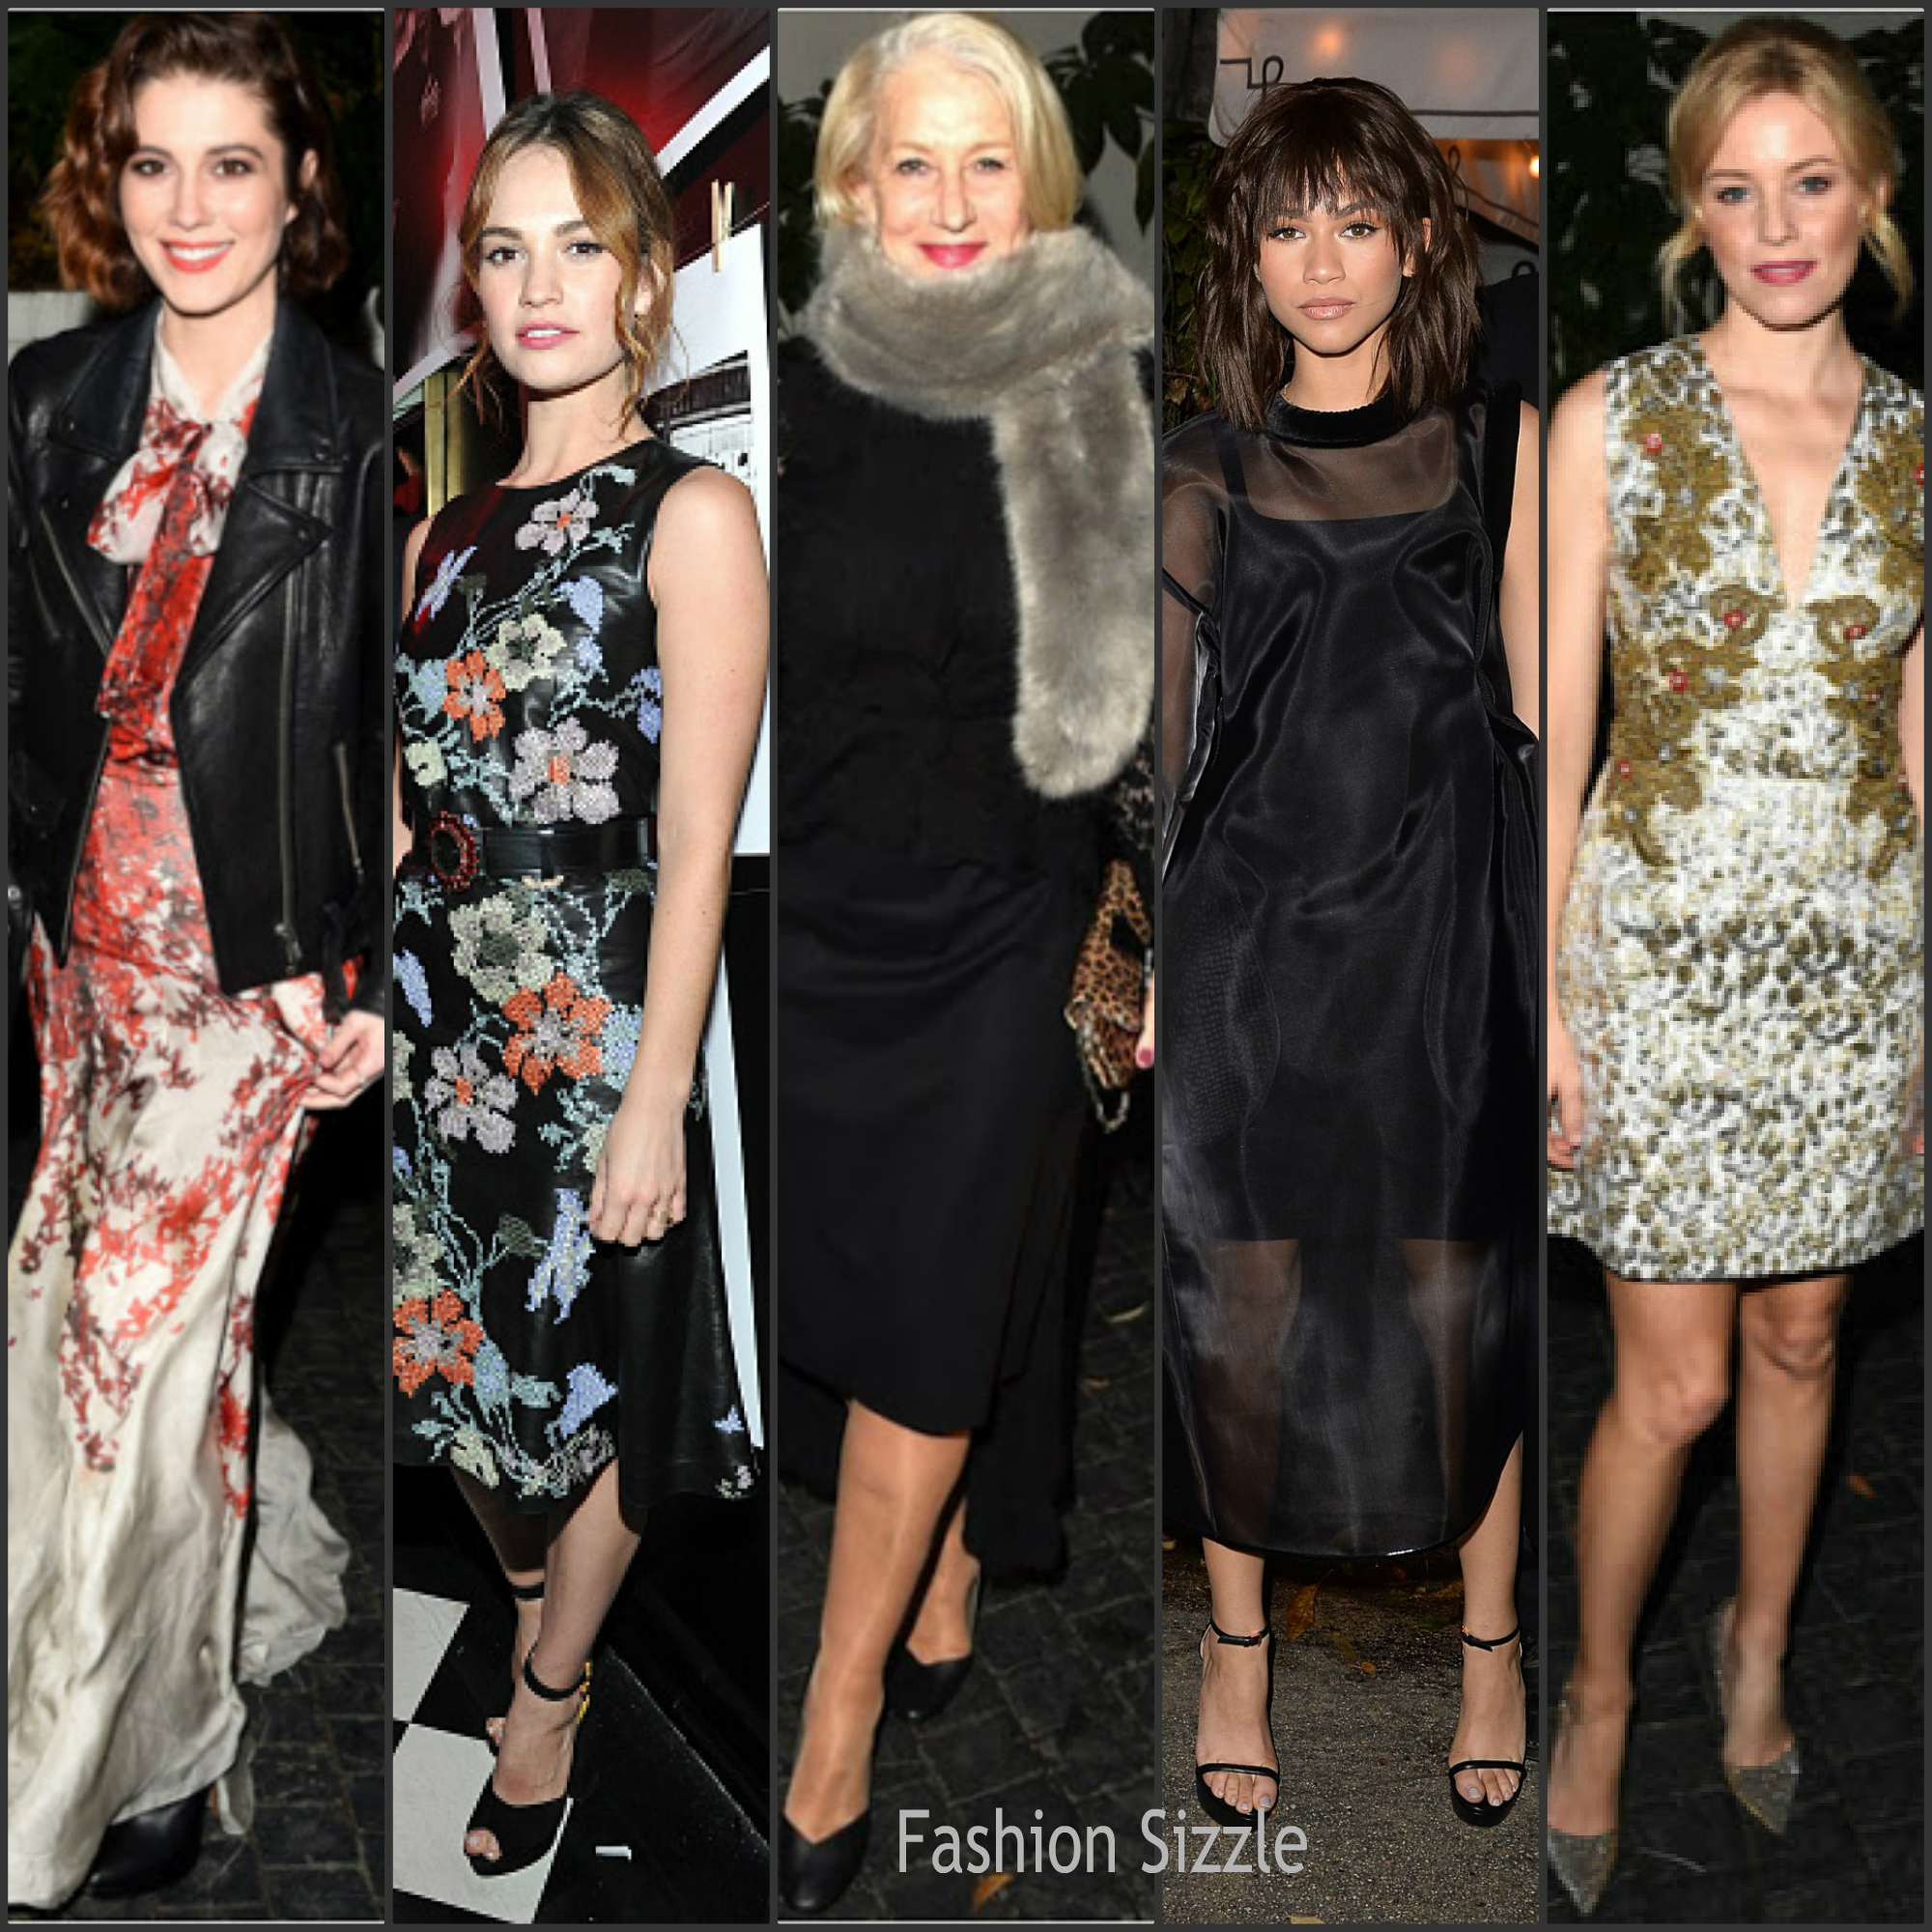 w-magazine-celebrates-the-best-performances-portfolio-and-the-golden-globes-party